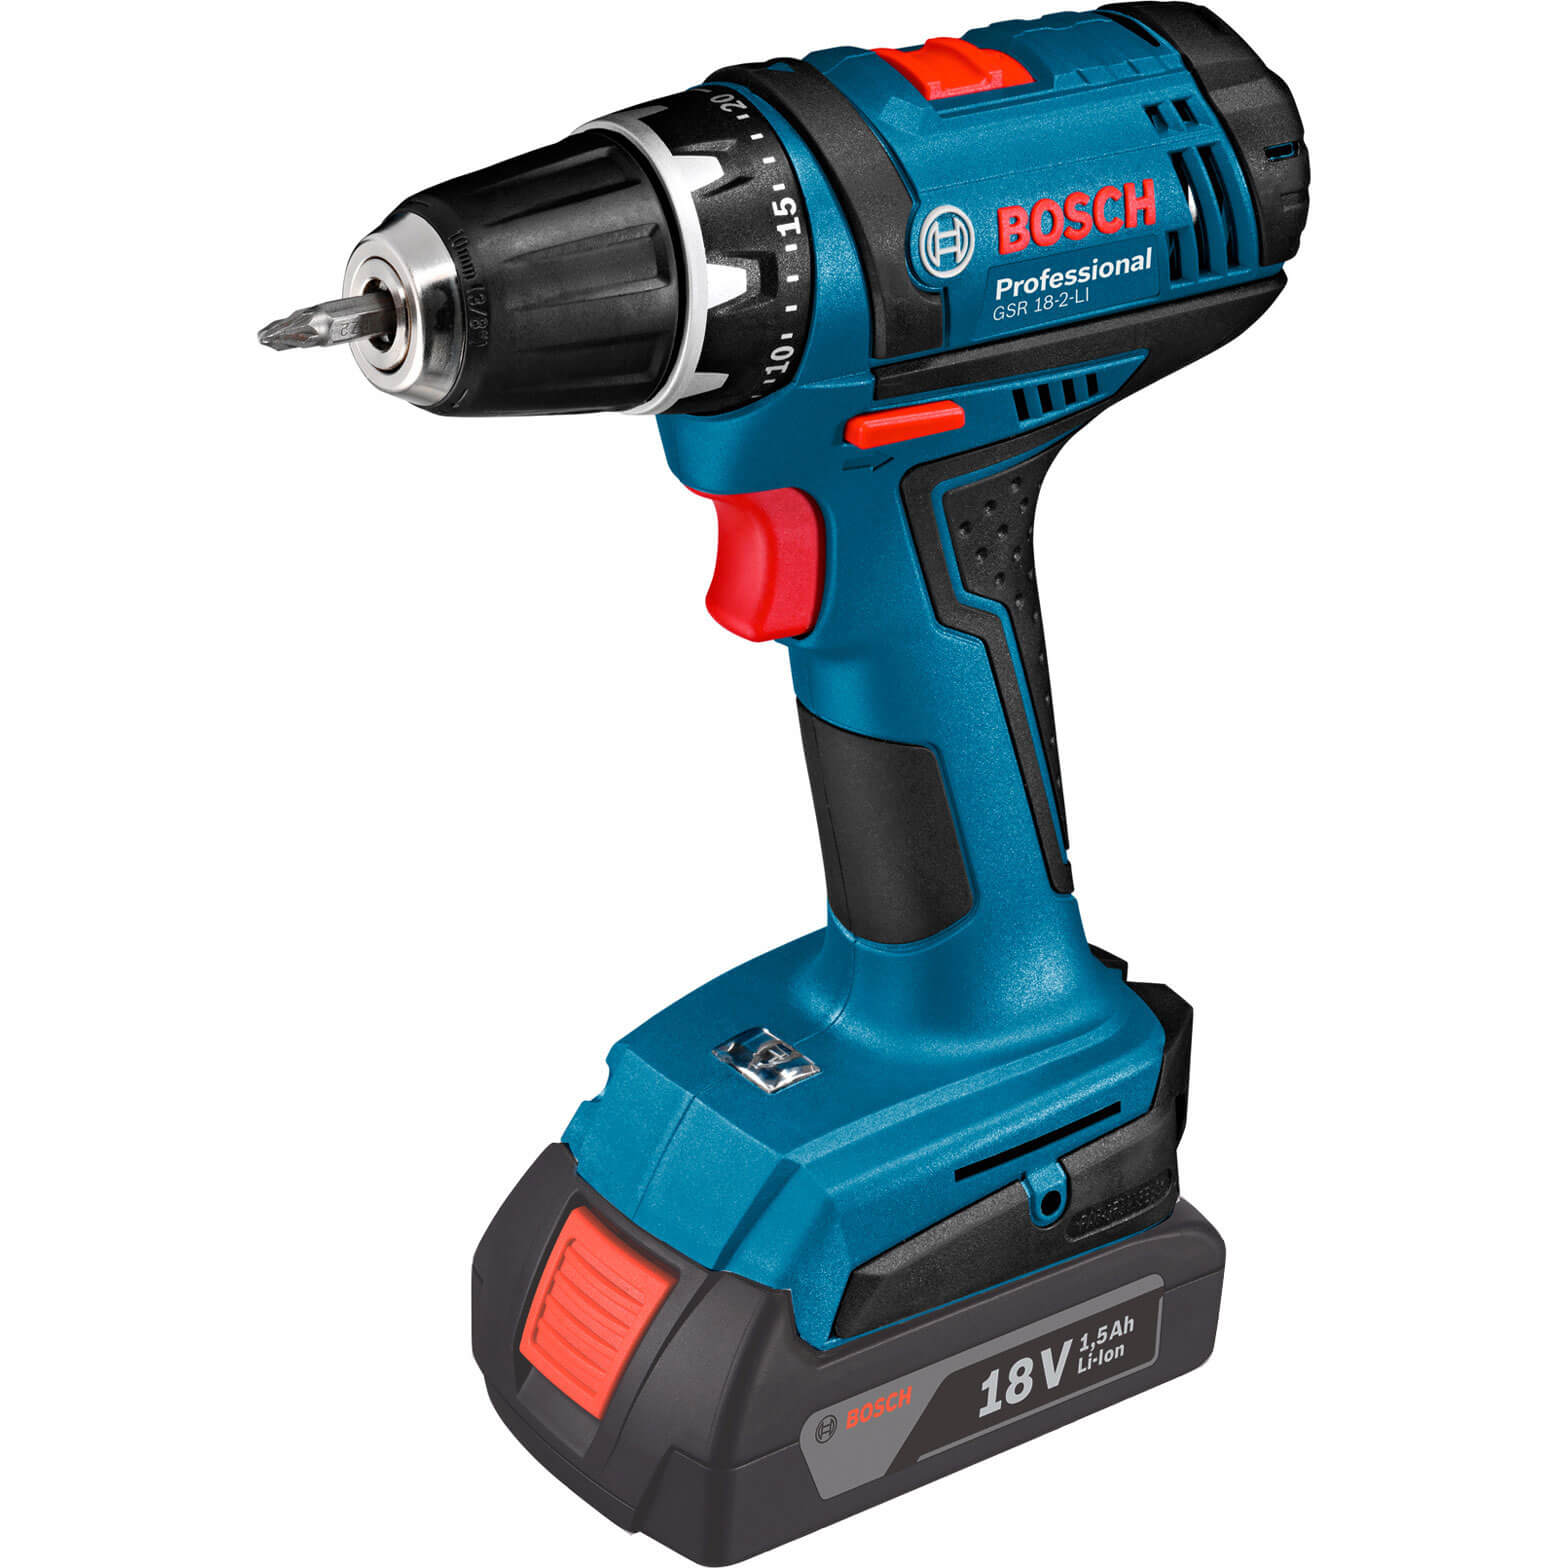 zzz bosch gsr 18 2 li 18v cordless drill driver. Black Bedroom Furniture Sets. Home Design Ideas